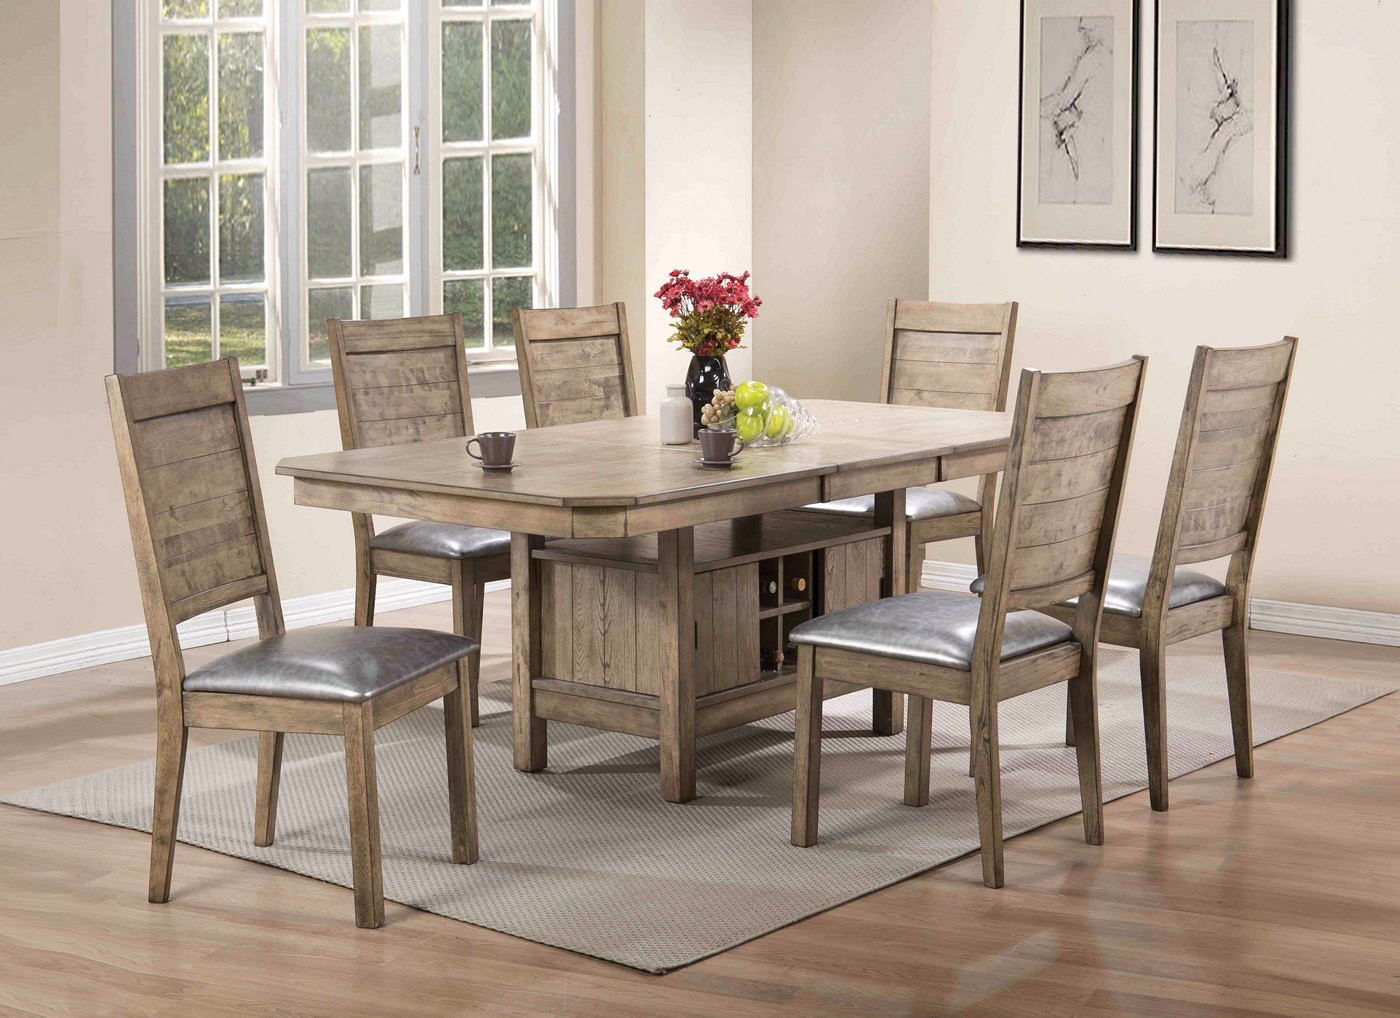 """Best ideas about Dining Table With Storage . Save or Pin Valeria Modern 5 pc 60"""" 78"""" Storage Dining Table Set in Now."""